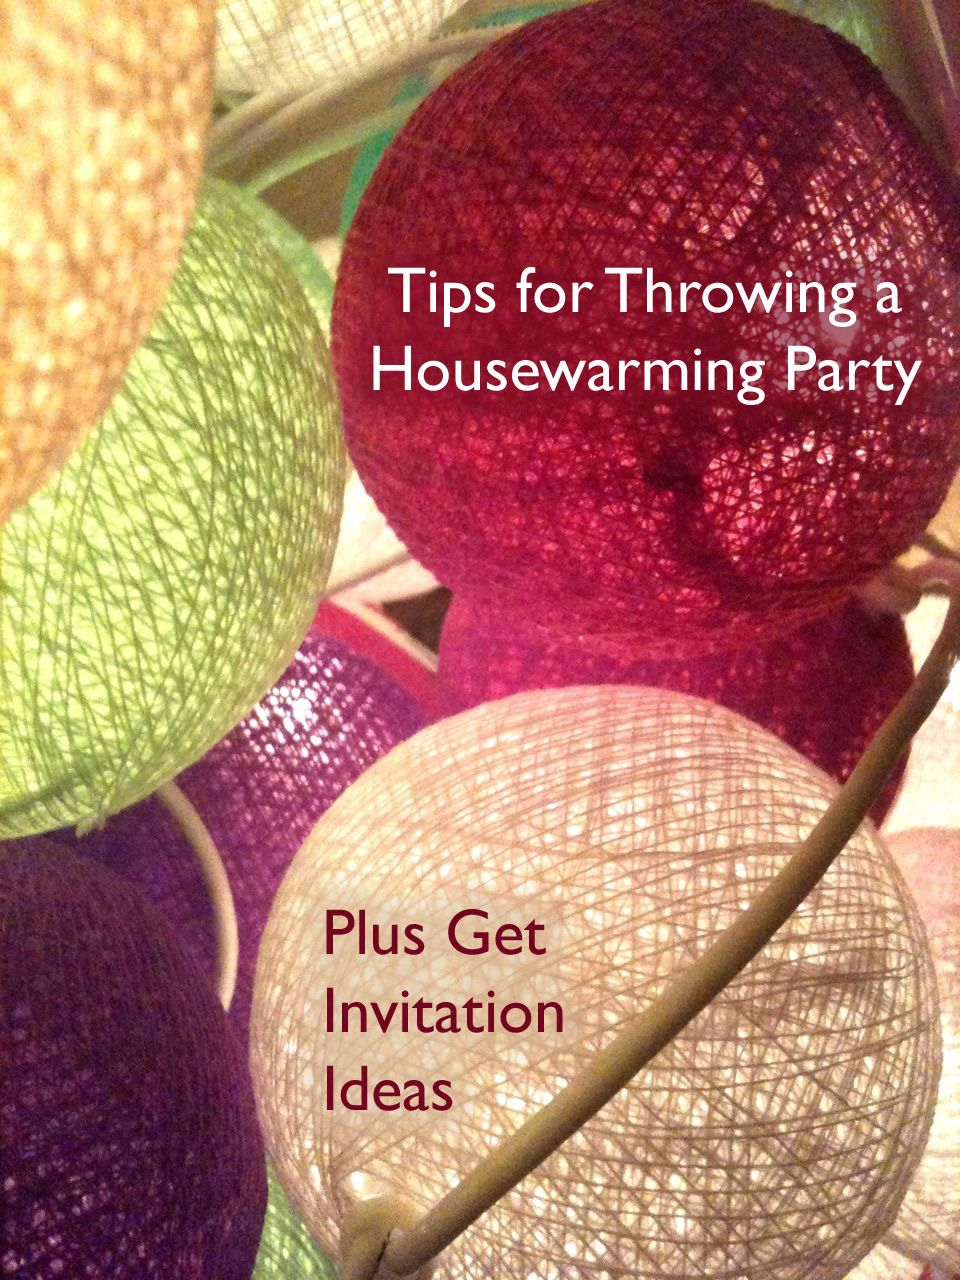 Tips For Throwing A Housewarming Party Invitation Ideas - Decorations for house warming parties ideas